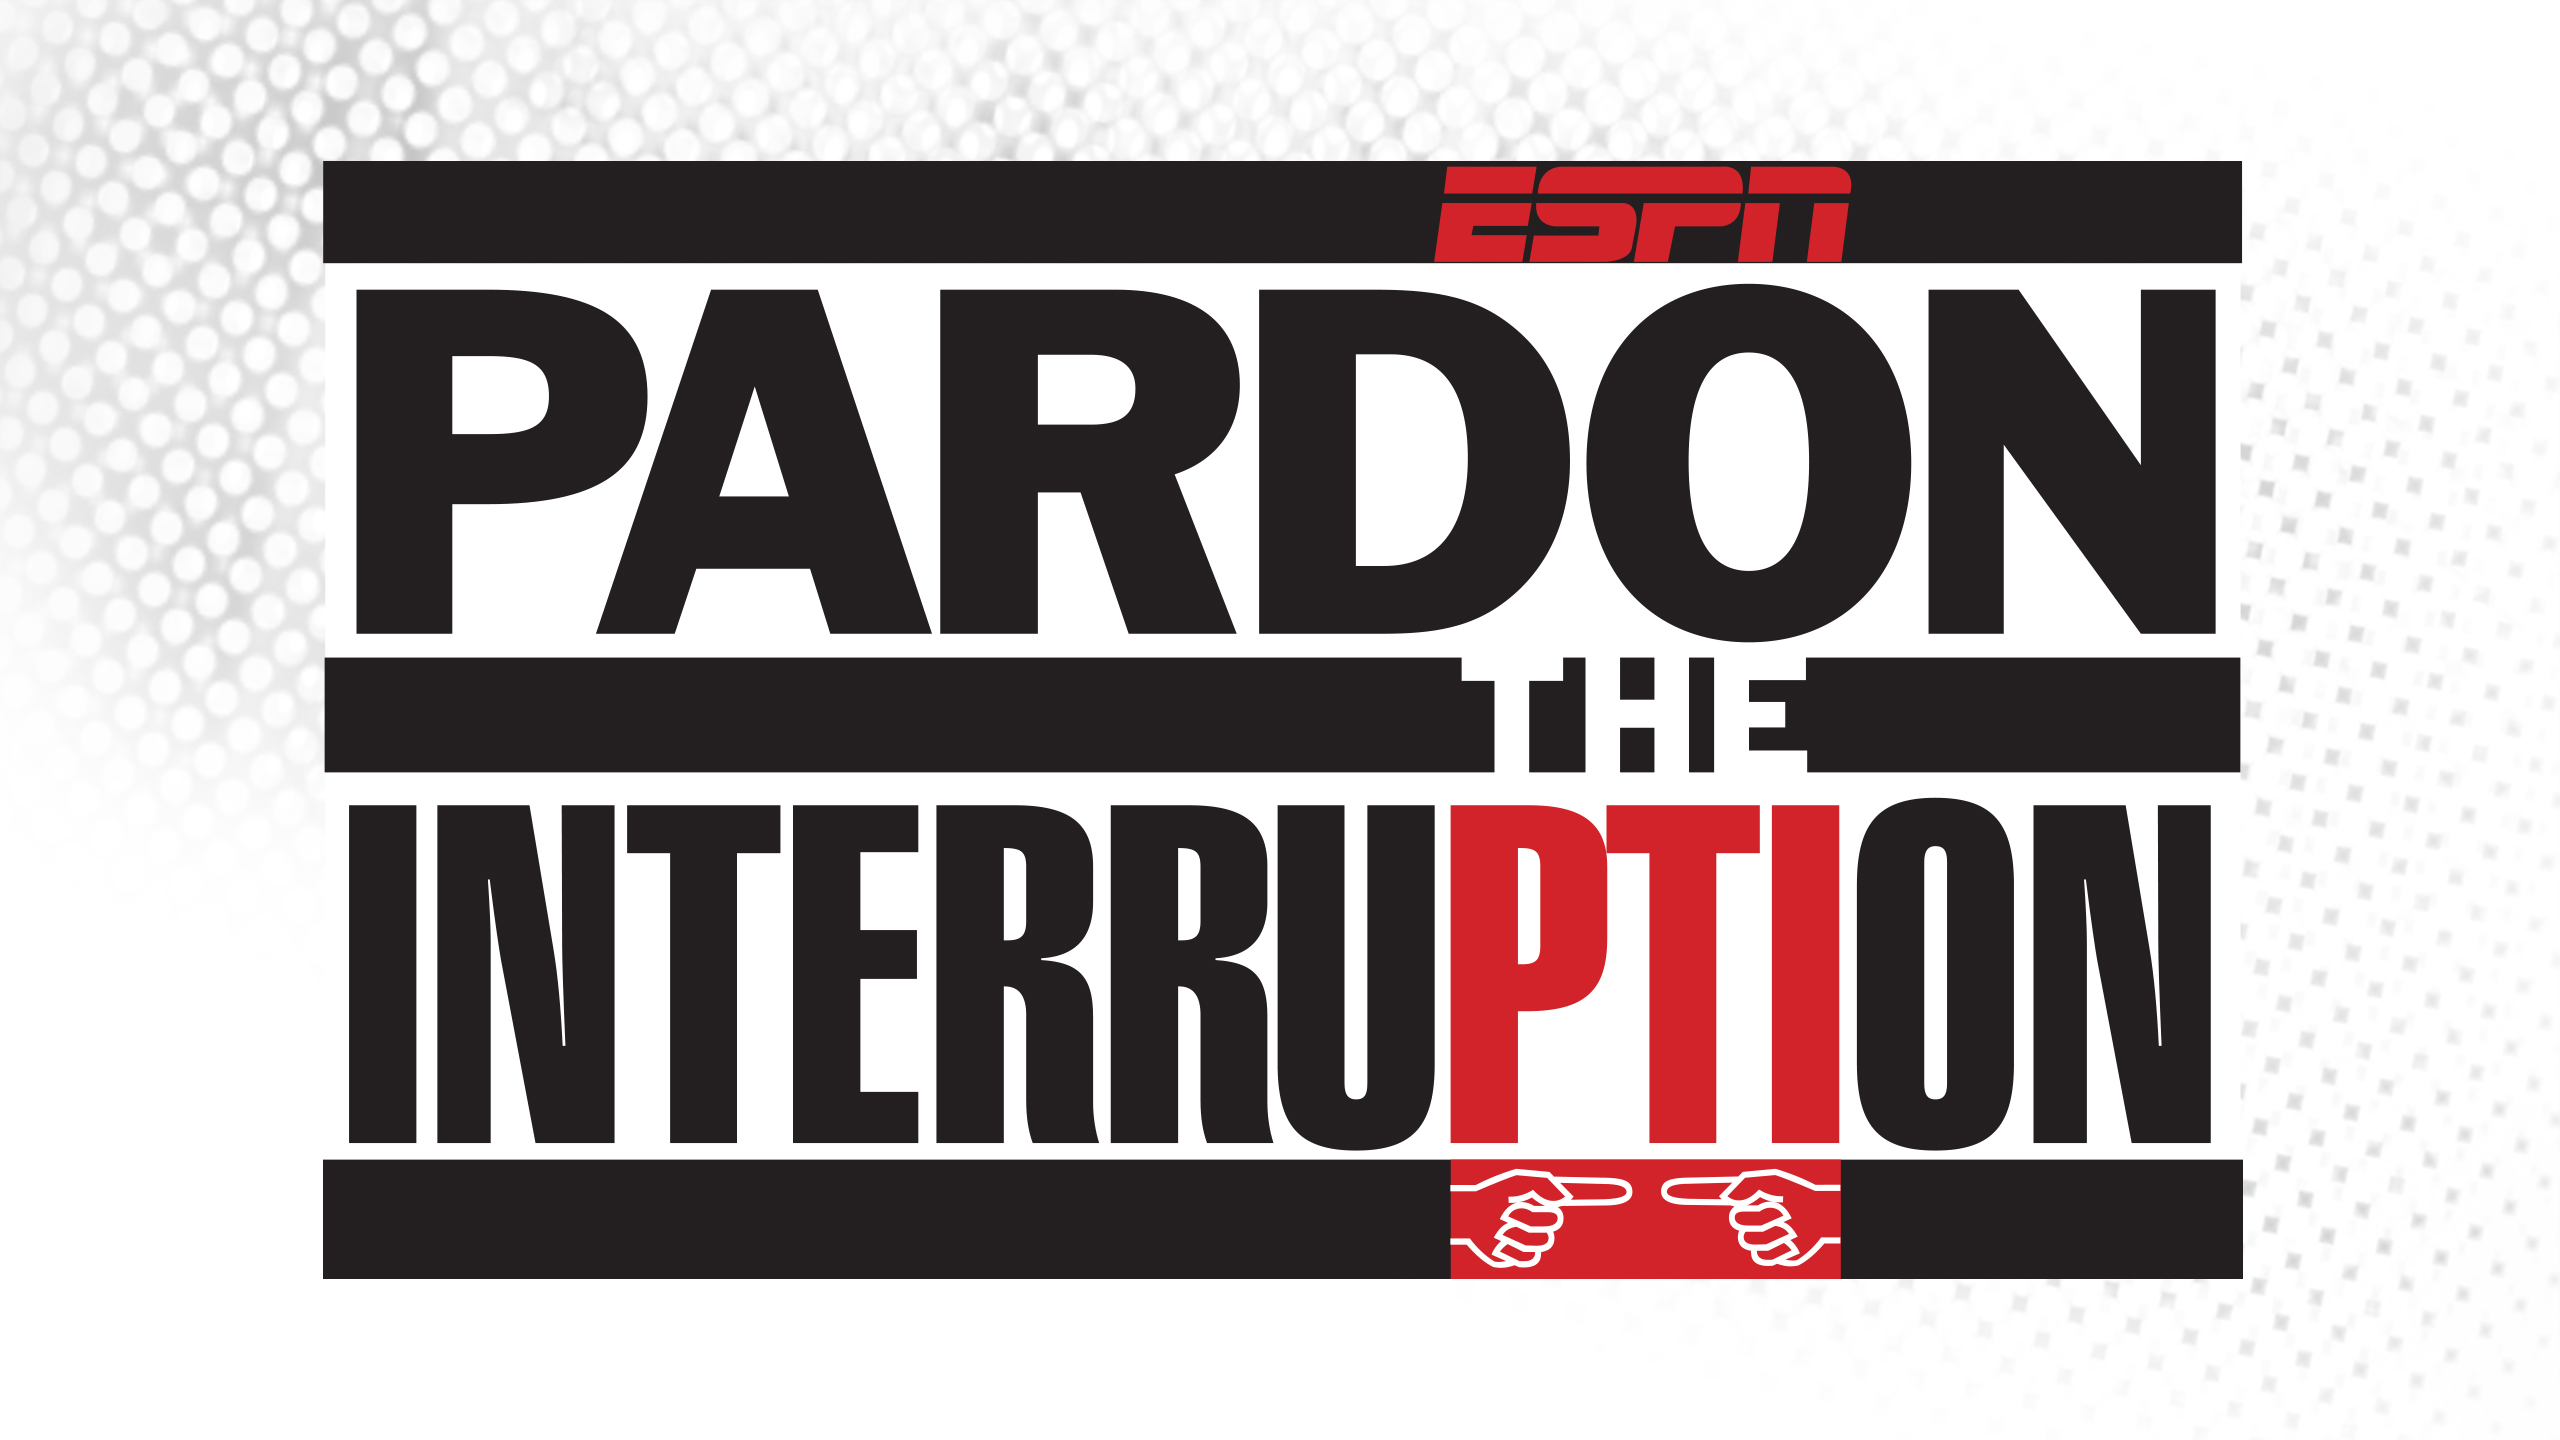 Wed, 9/19 - Pardon The Interruption